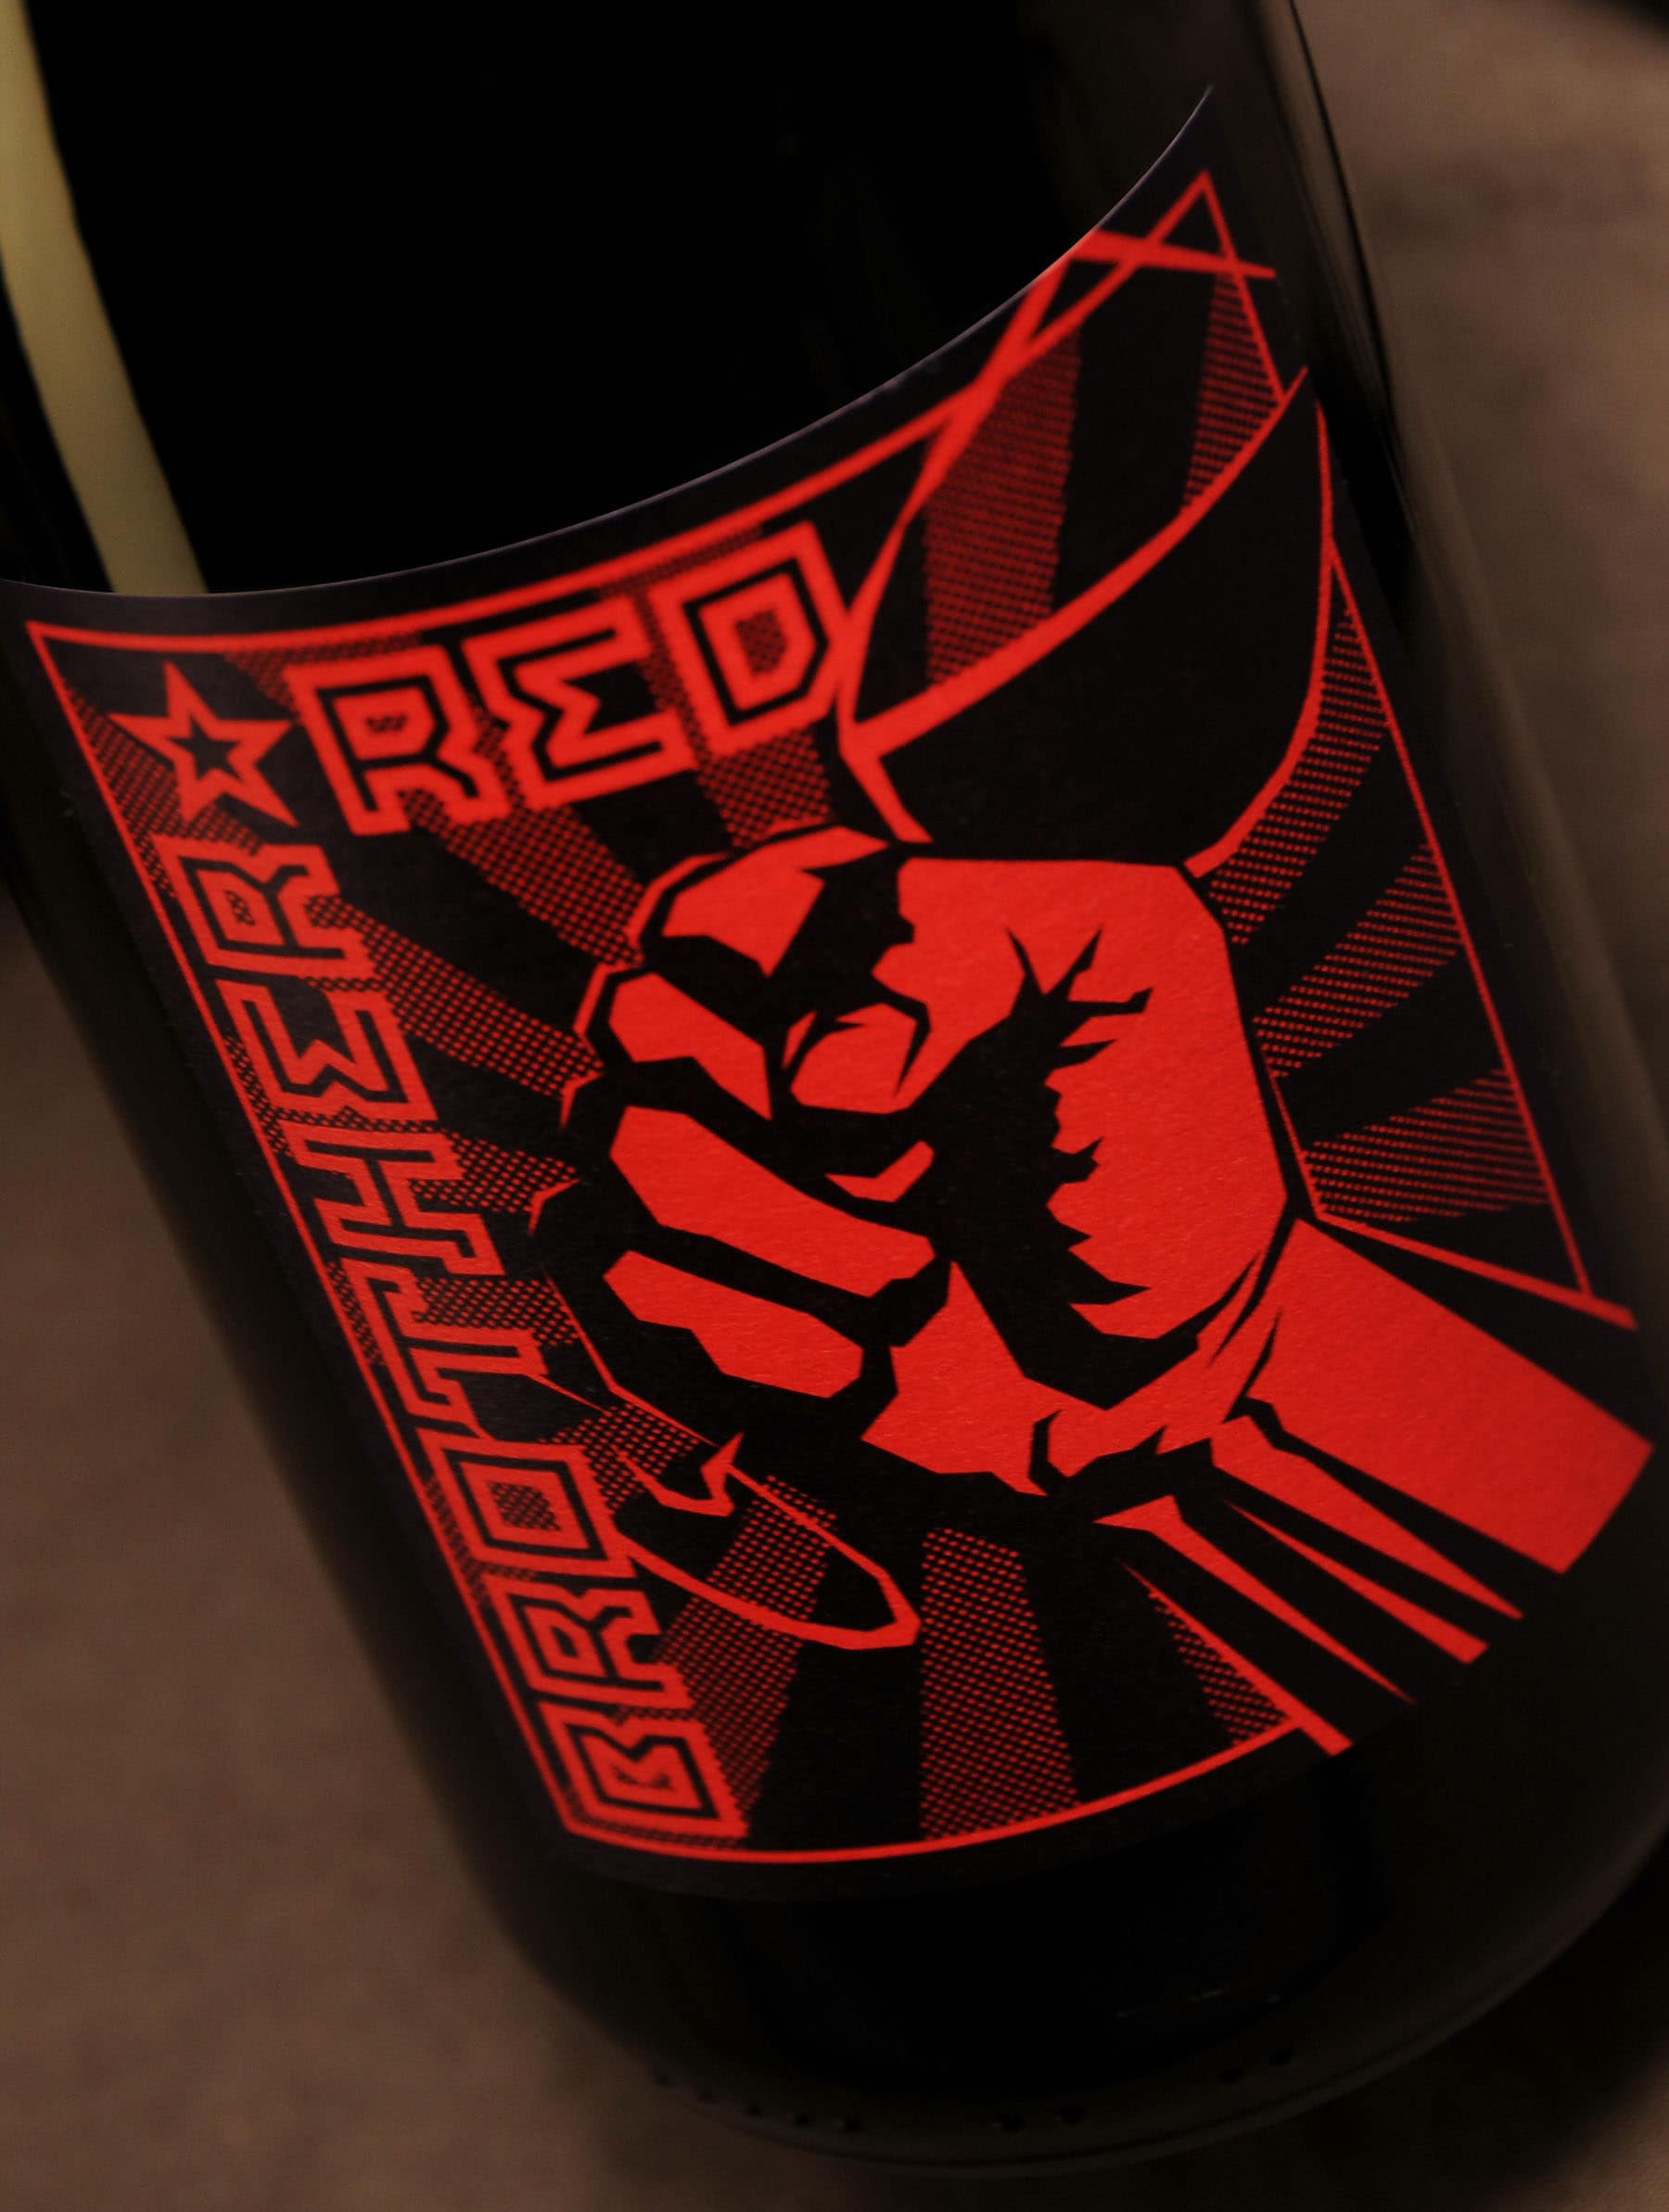 Brother Red bottle label